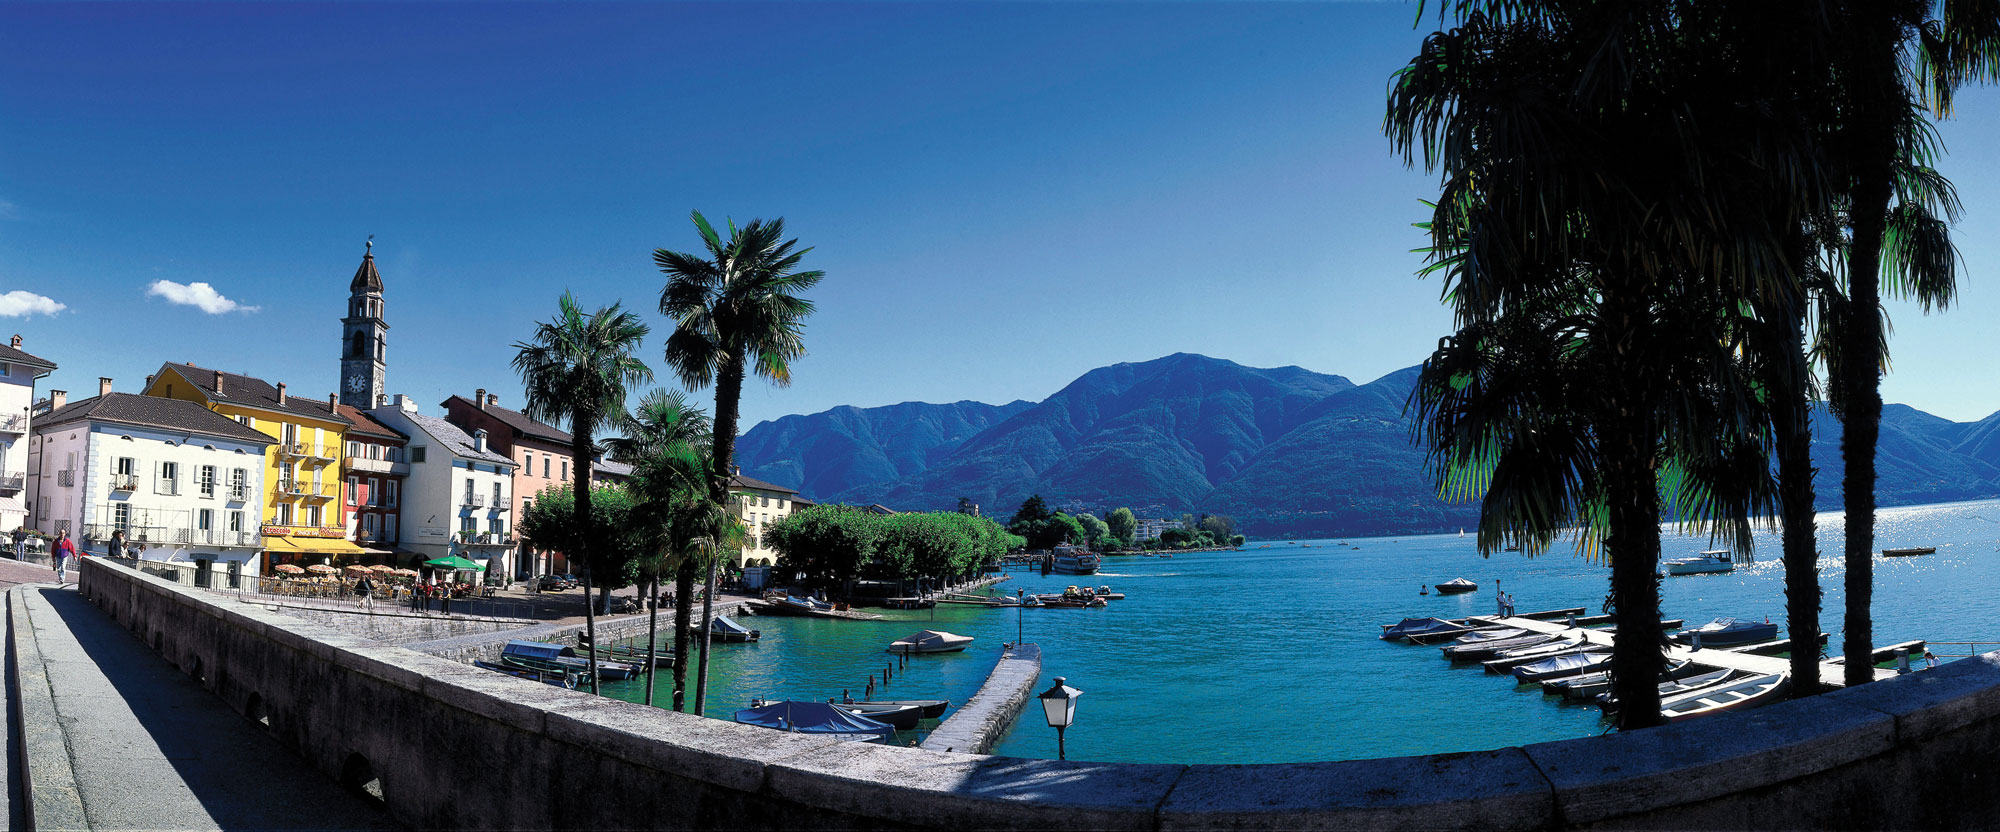 Ticino's Lesser-Known Lake Towns Take The Crown 7